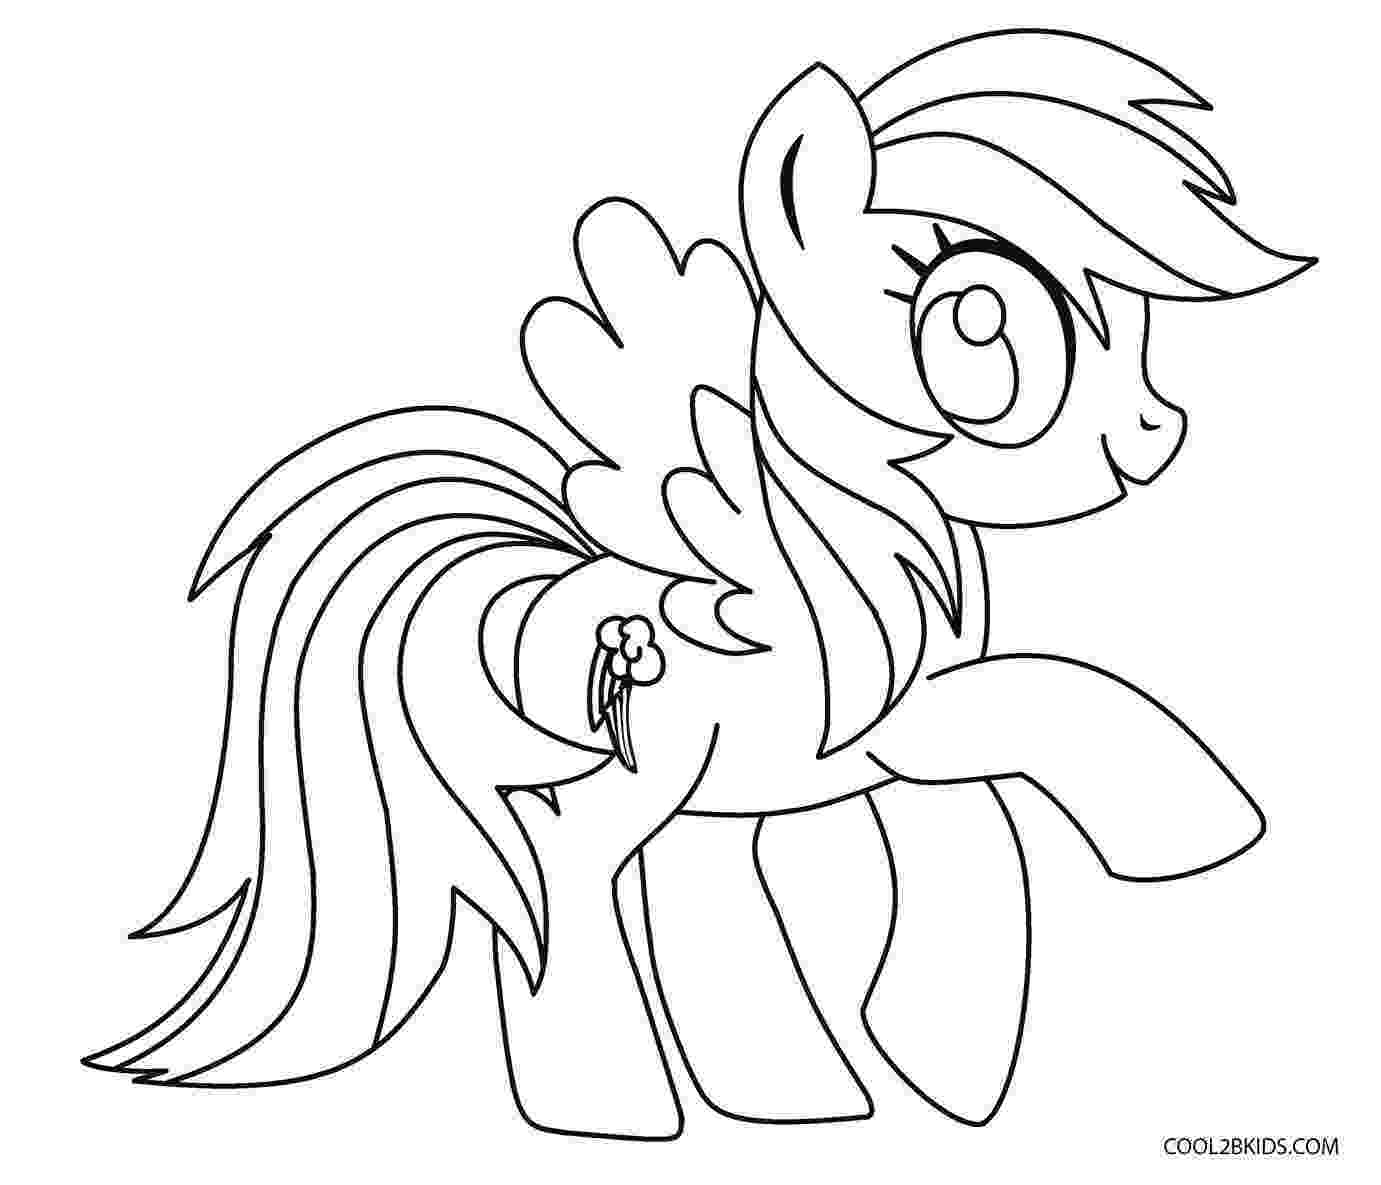 my pony coloring pages free printable my little pony coloring pages for kids pony pages my coloring